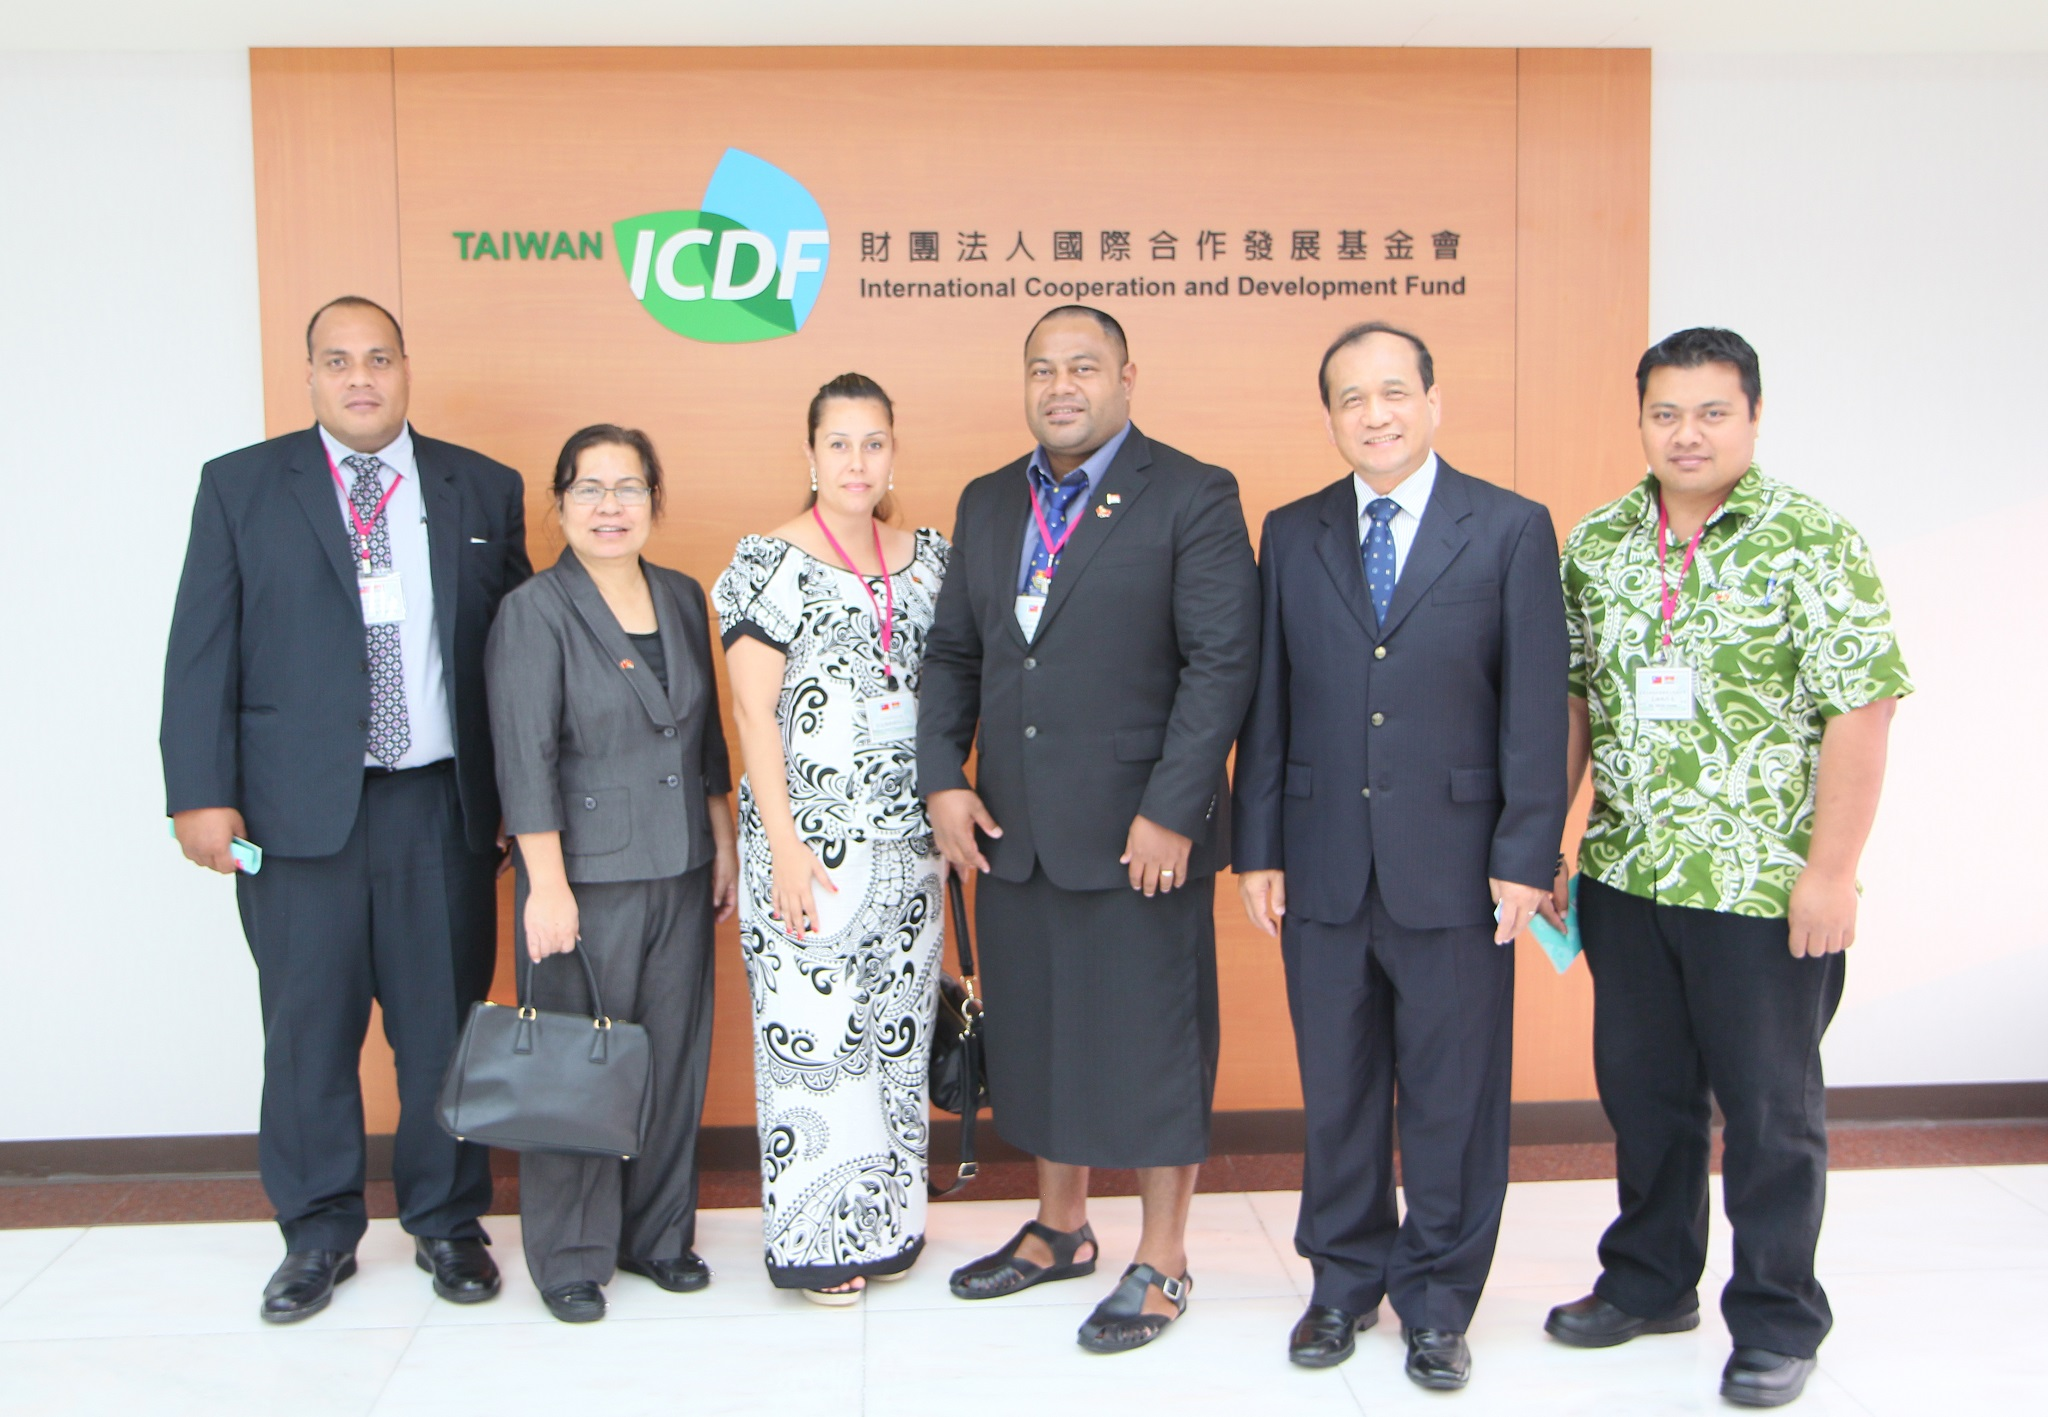 Vice President of the Republic of Kiribati H.E. Kourabi Nenem and Madame Joyce Virginia Nenem Visit the TaiwanICDF